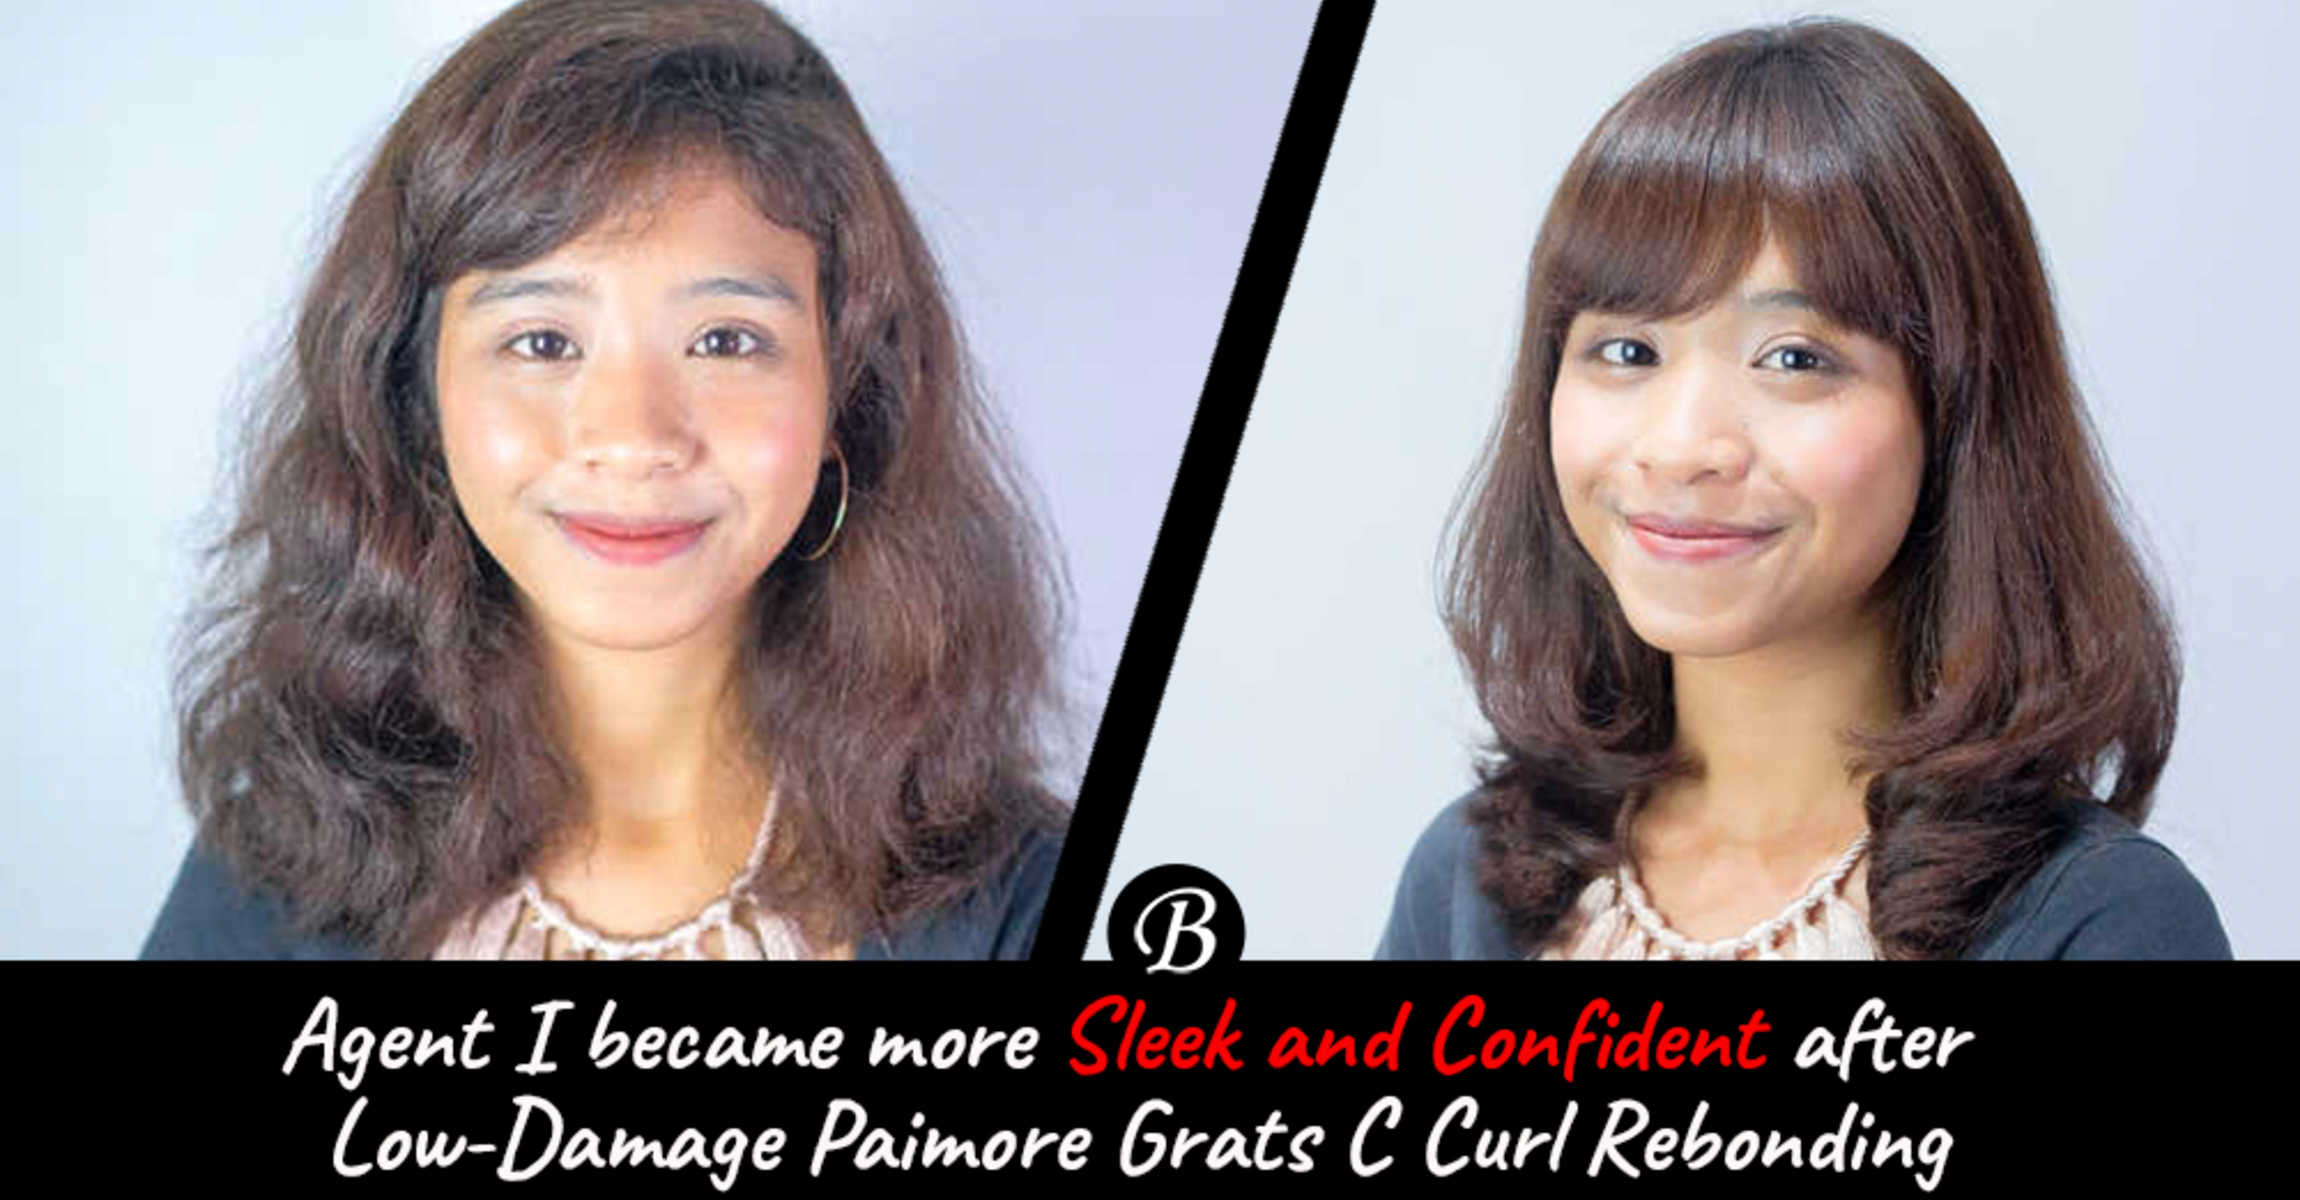 The Sleek Low-Damage Paimore GRATS C Curl Rebonding Makeover Made Agent I More Confident